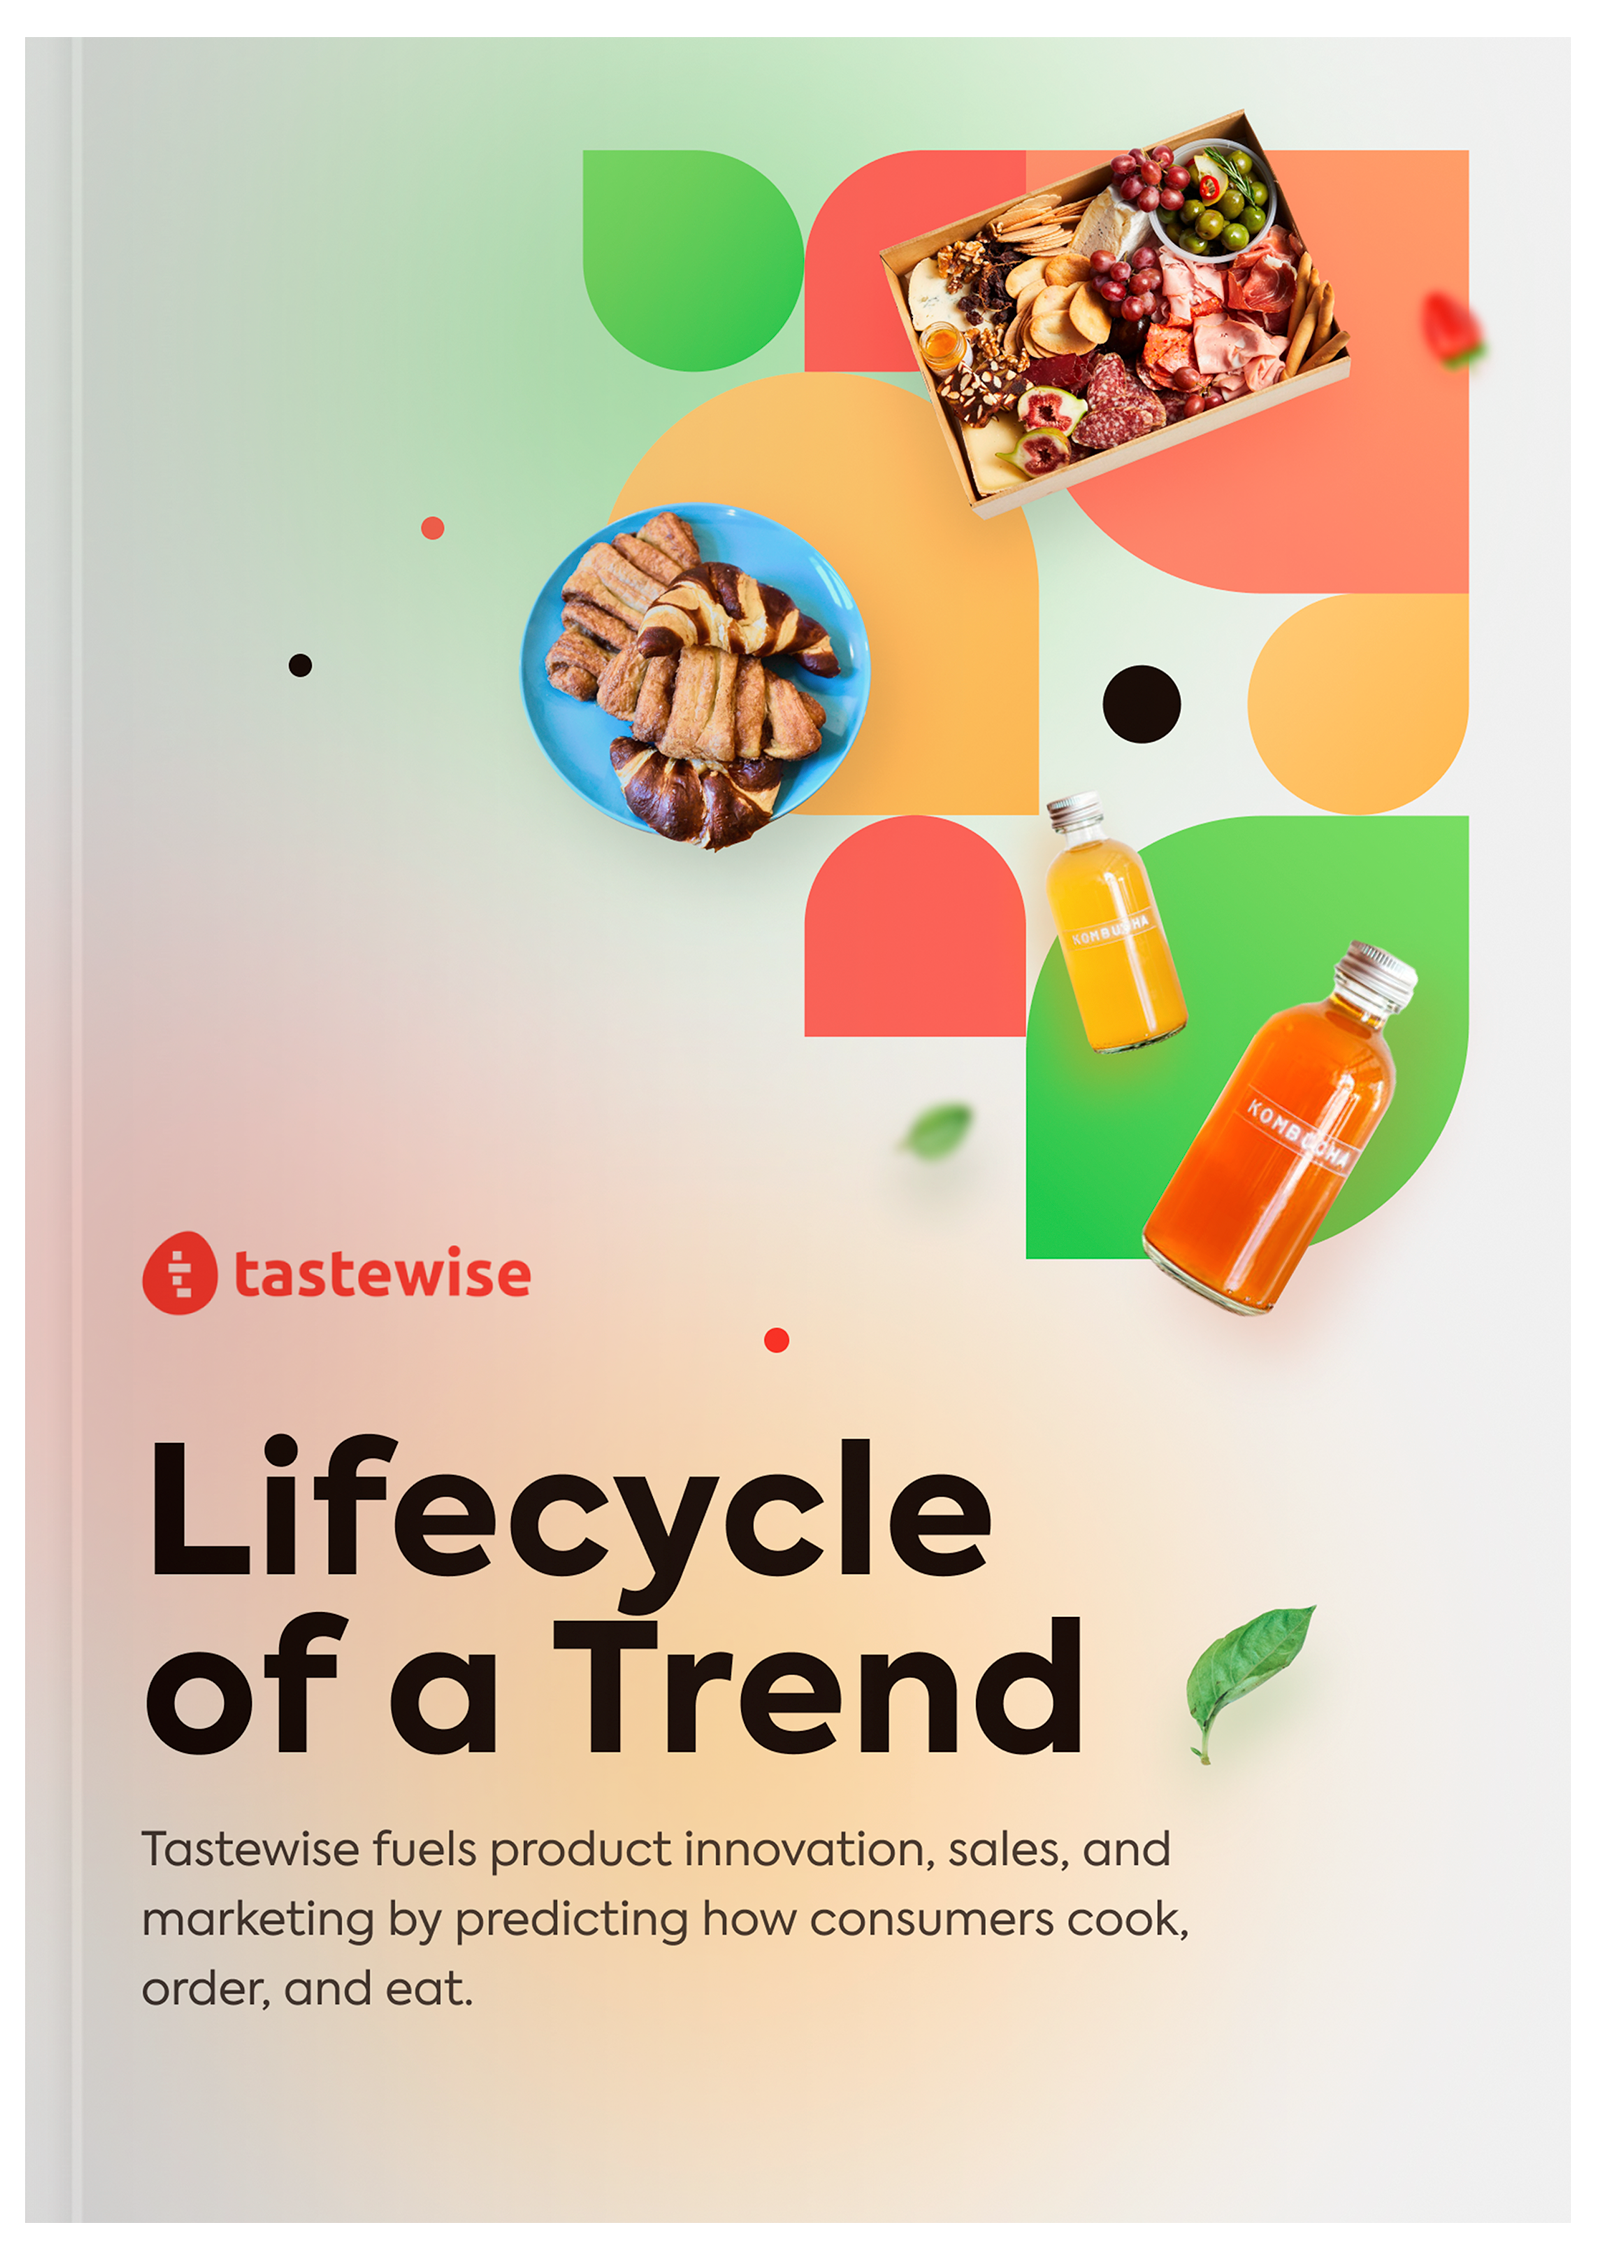 Report: Lifecycle of Trend